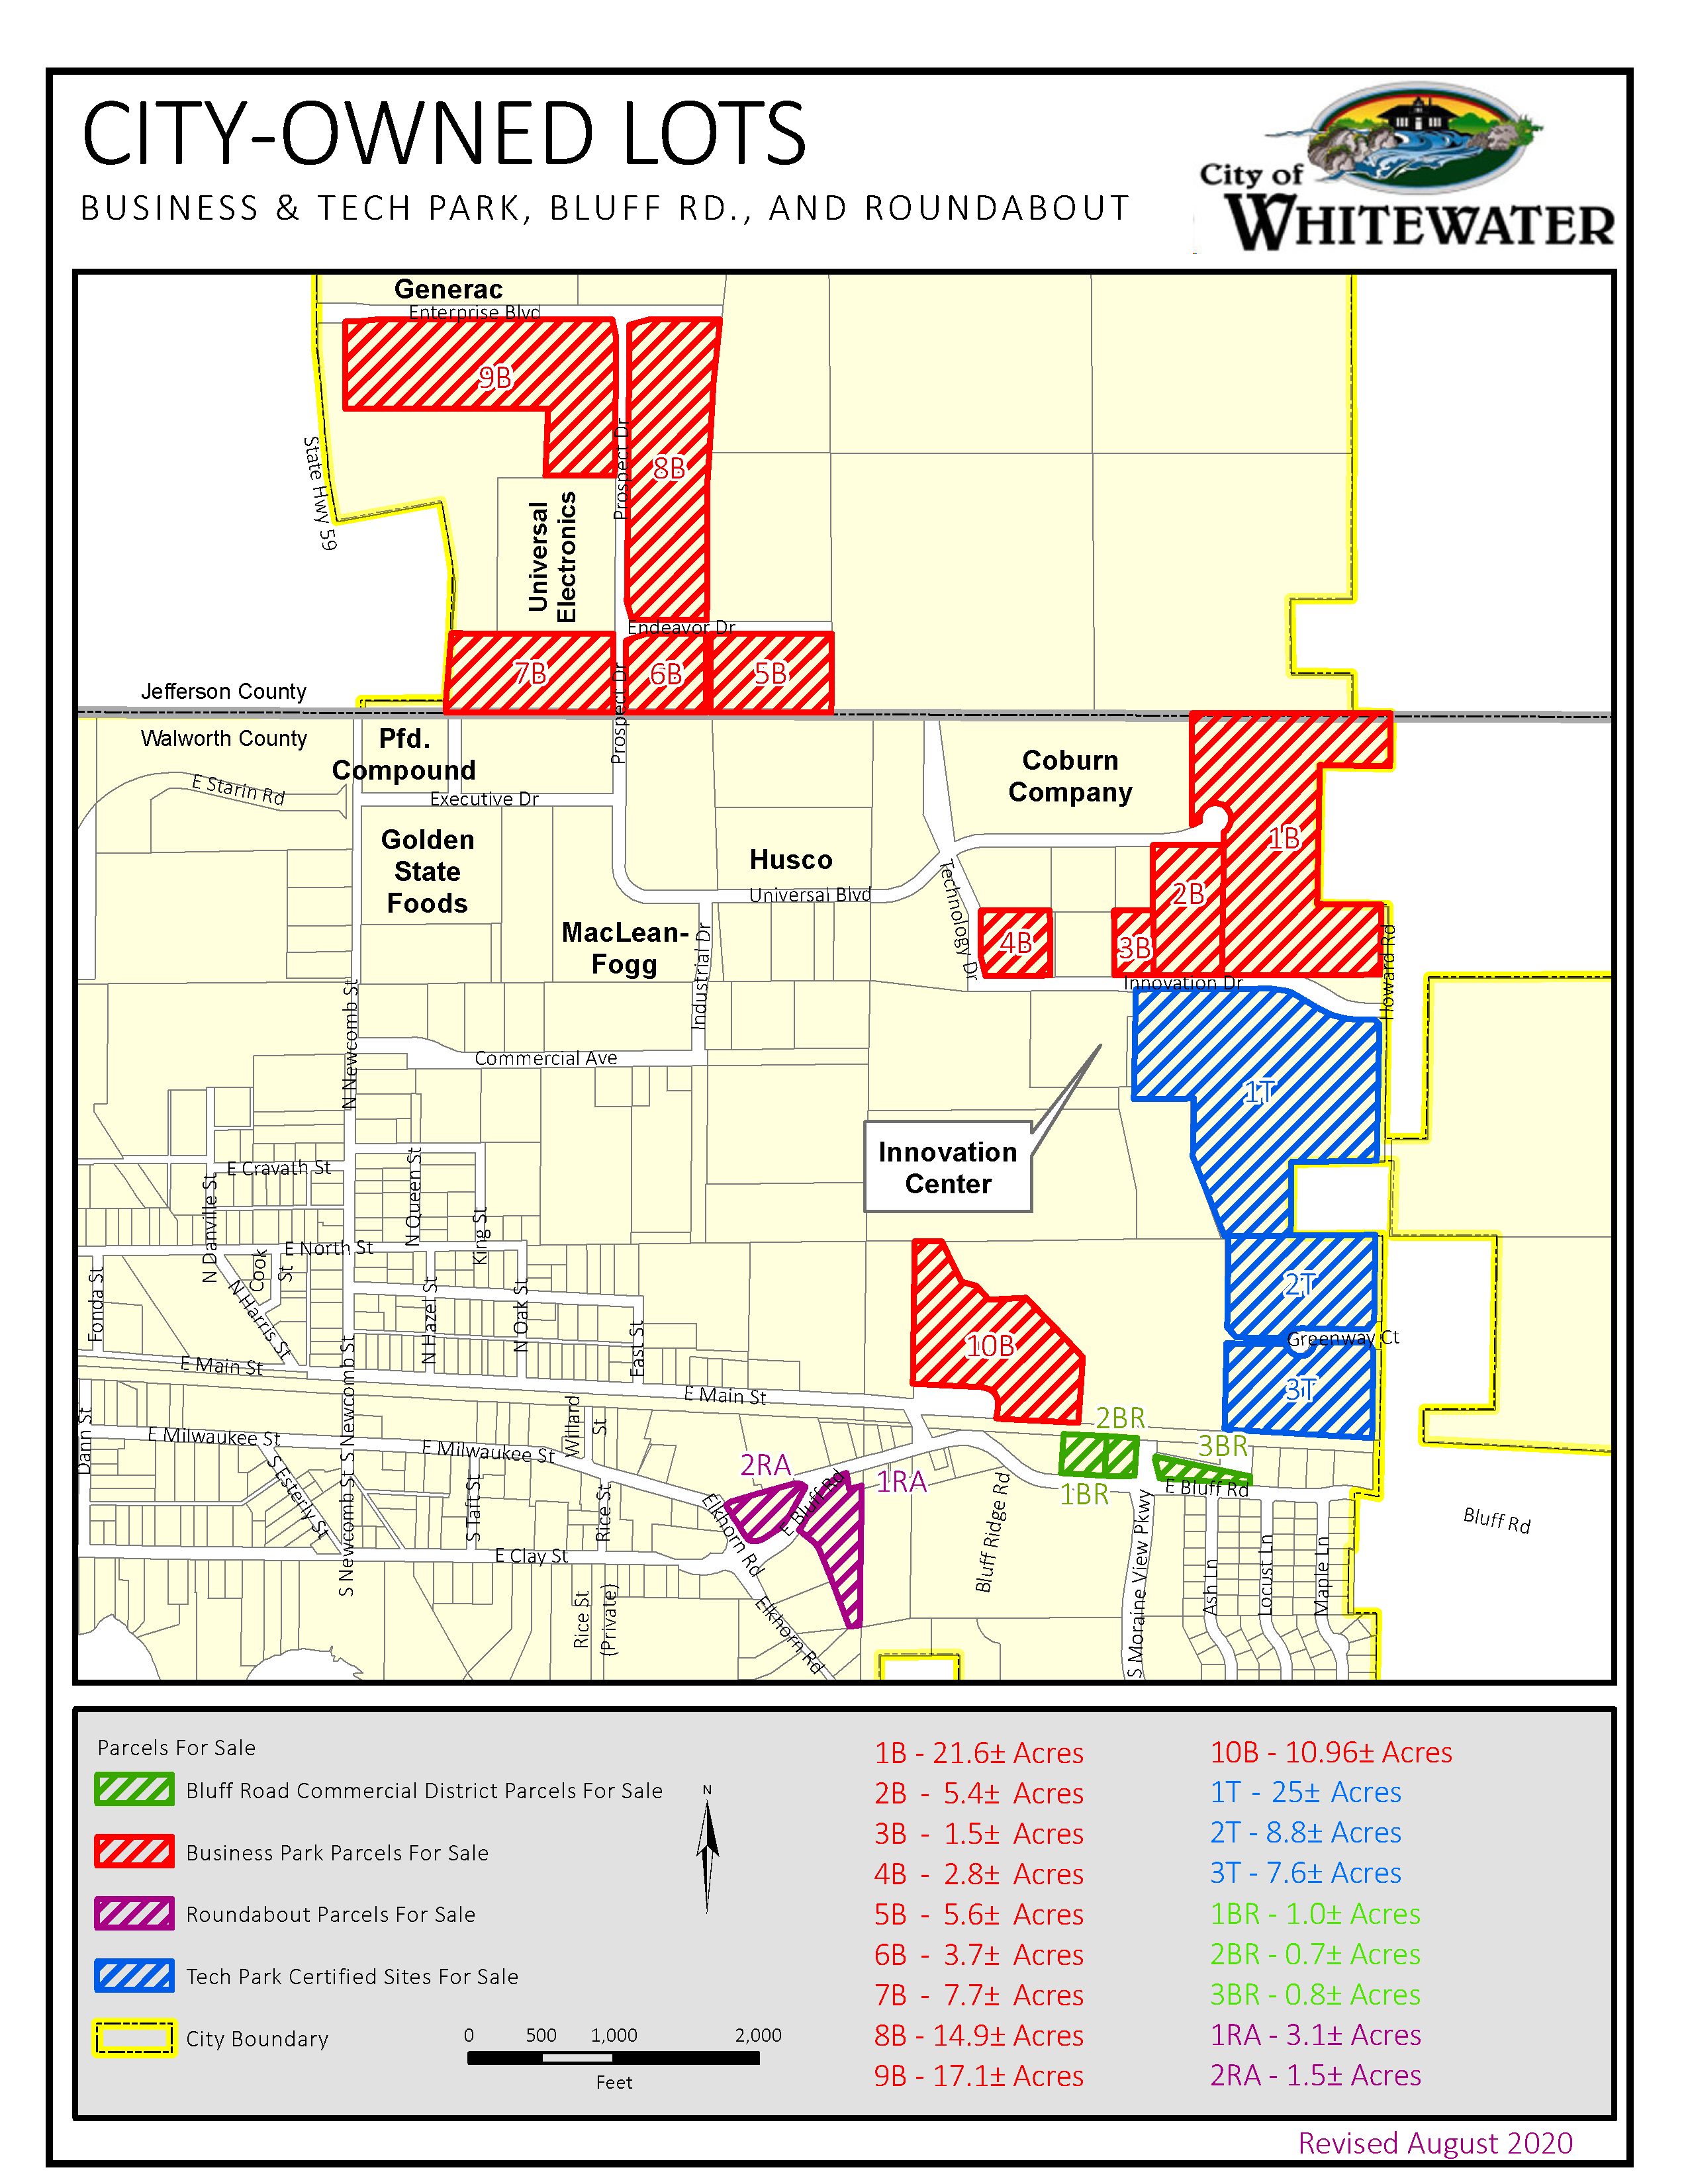 City-Owned Lots Map Rev. 8-27-2020